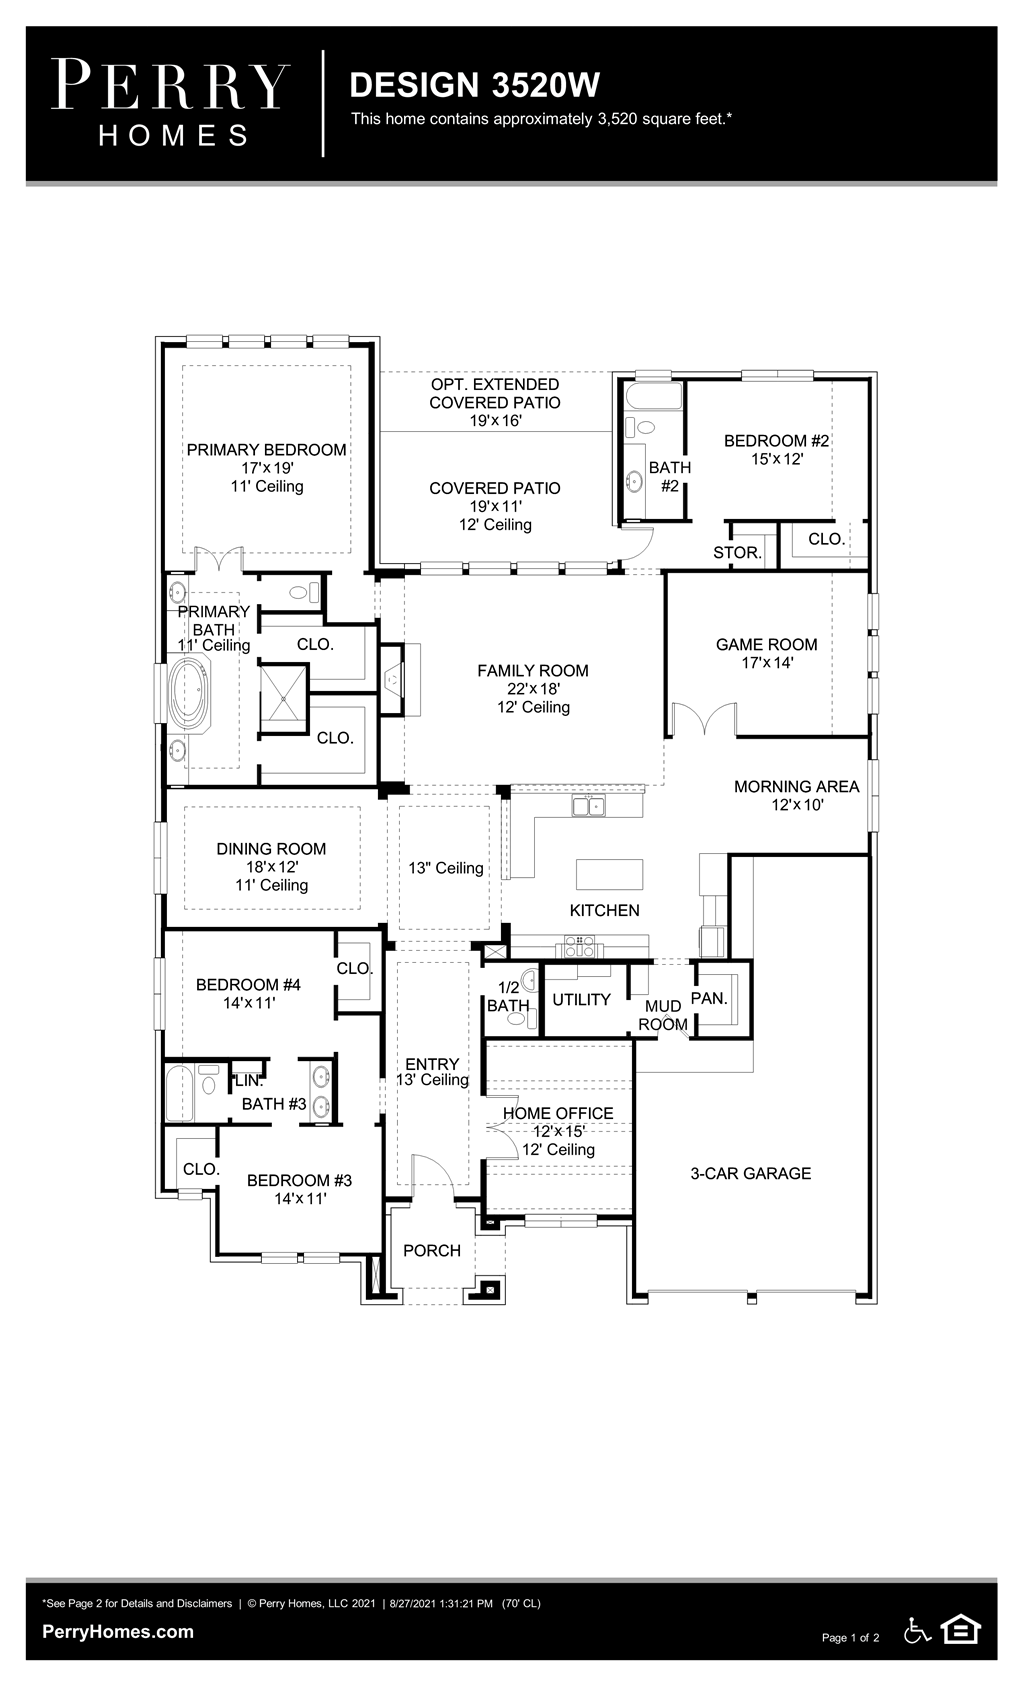 Floor Plan for 3520W